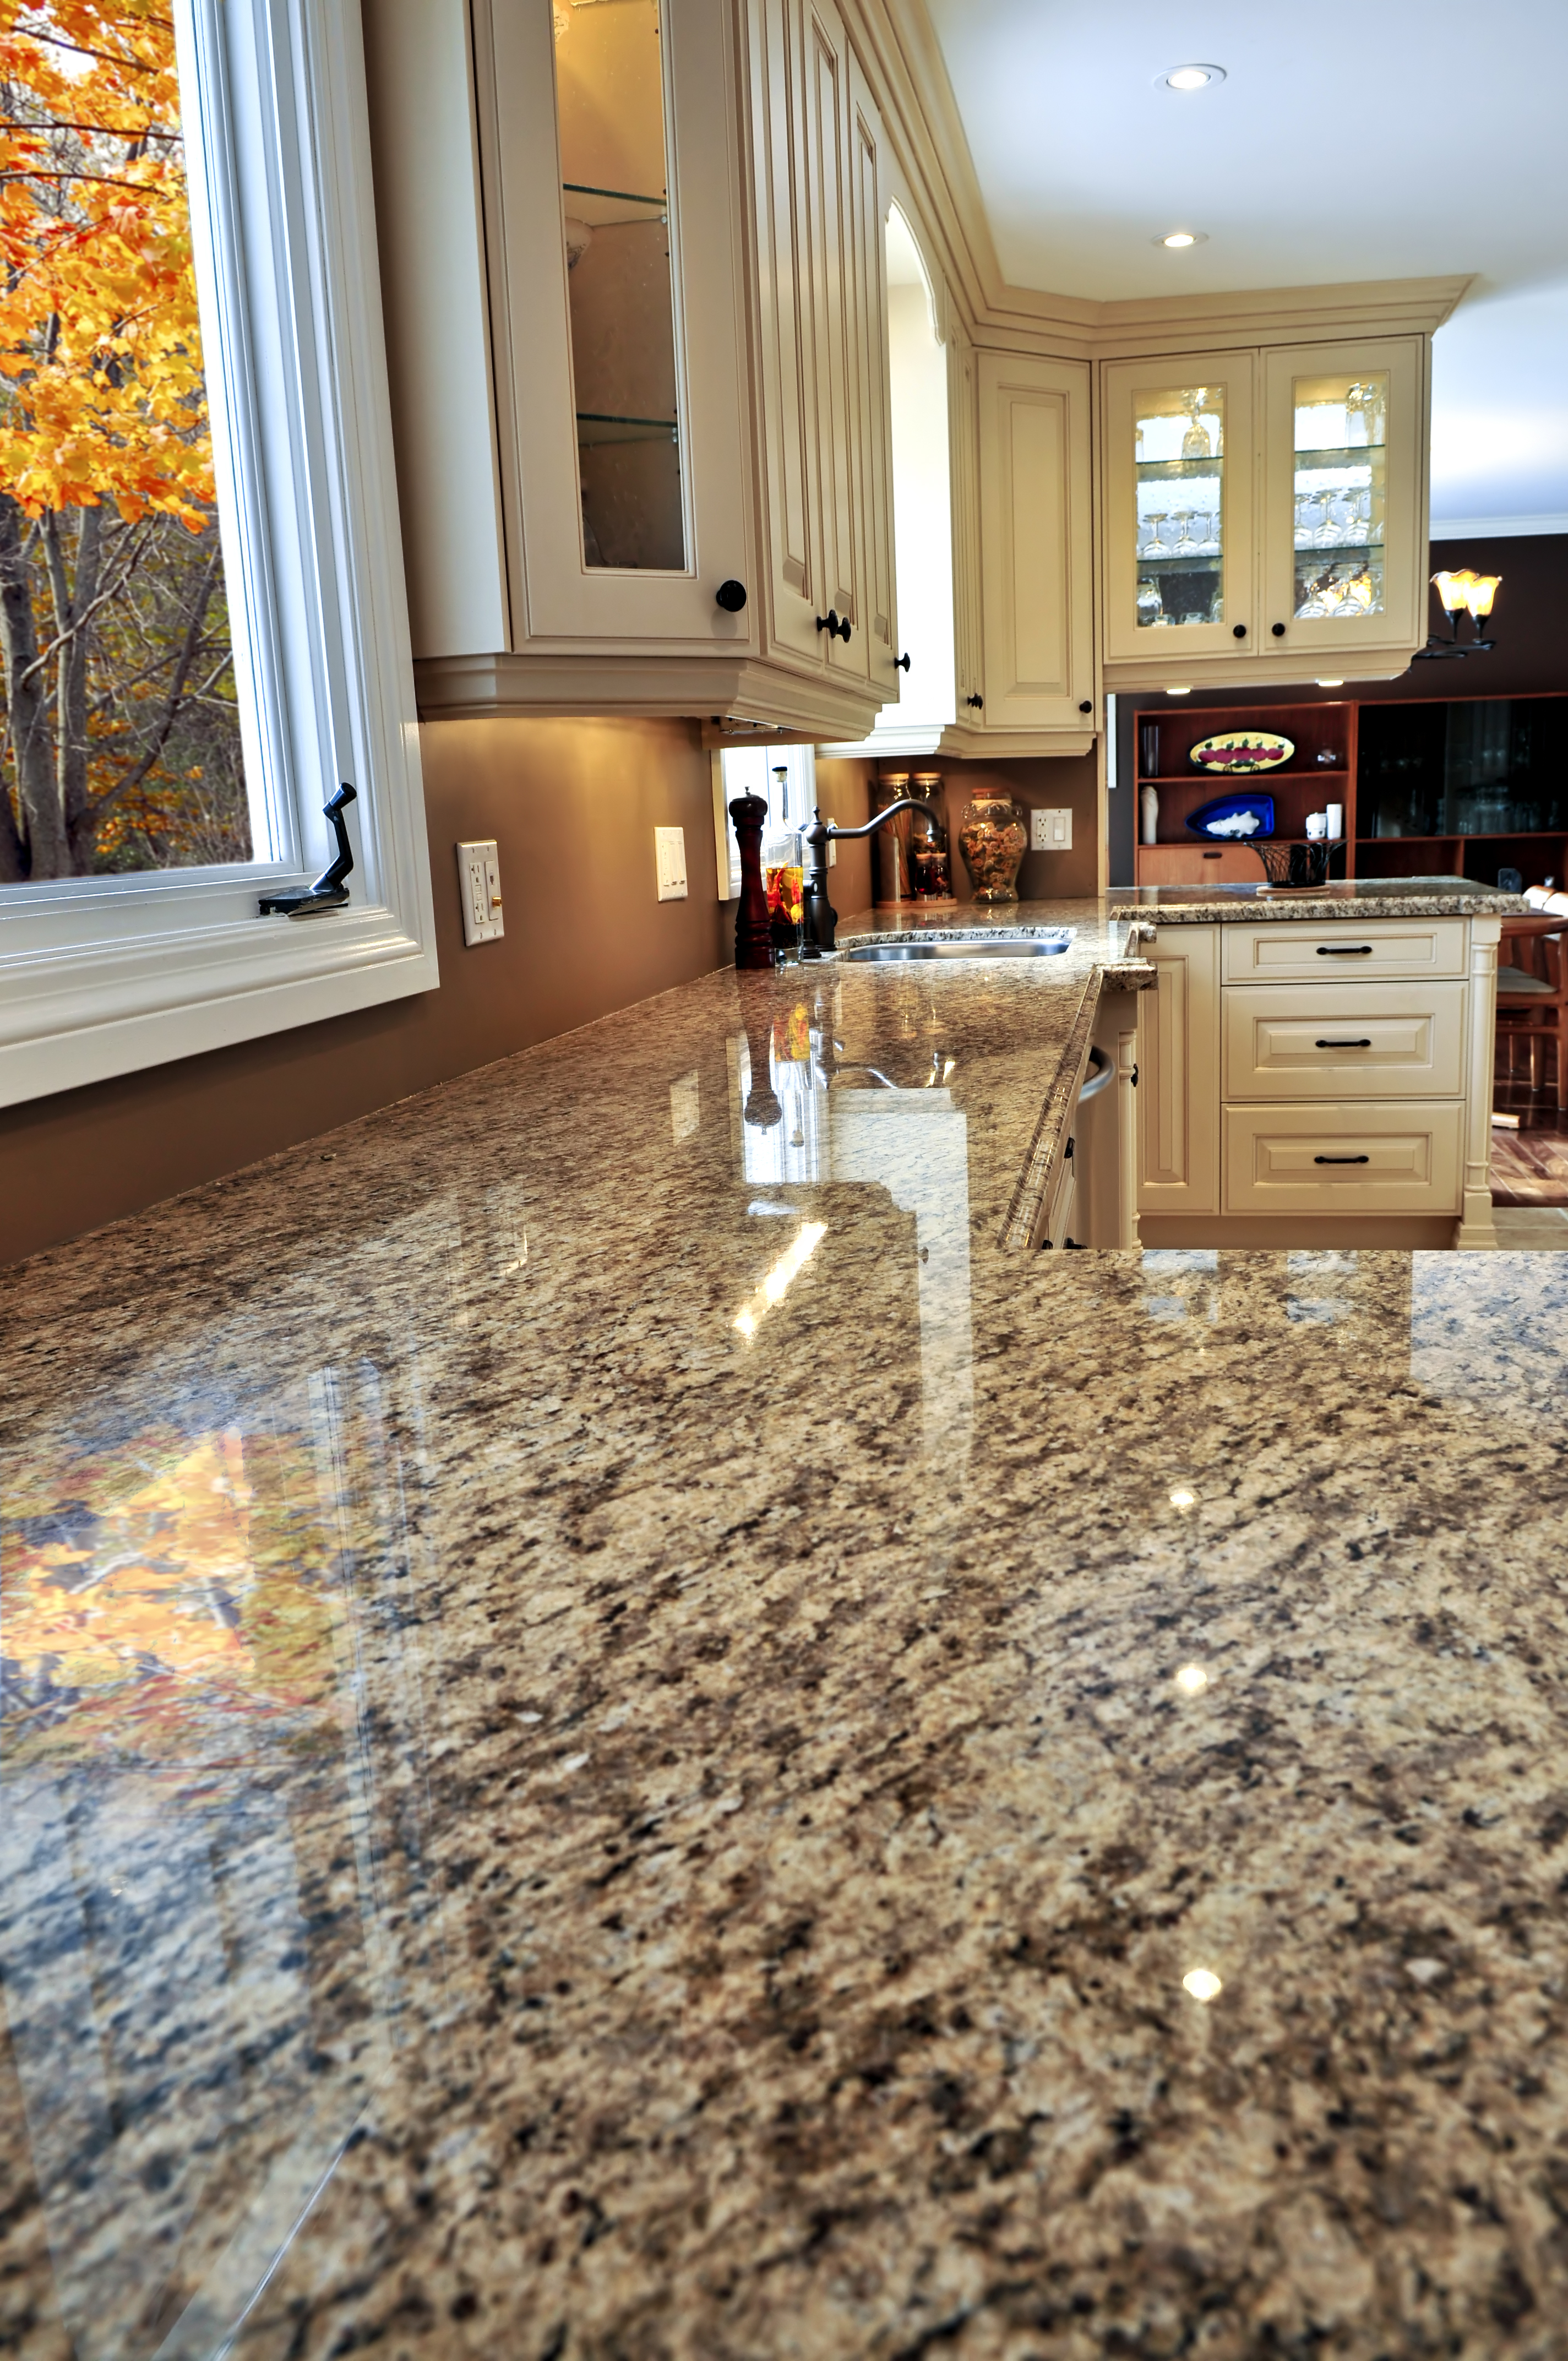 tops kitchen cabinets pompano 33x22 sink 7 common countertop problems and how to fix them